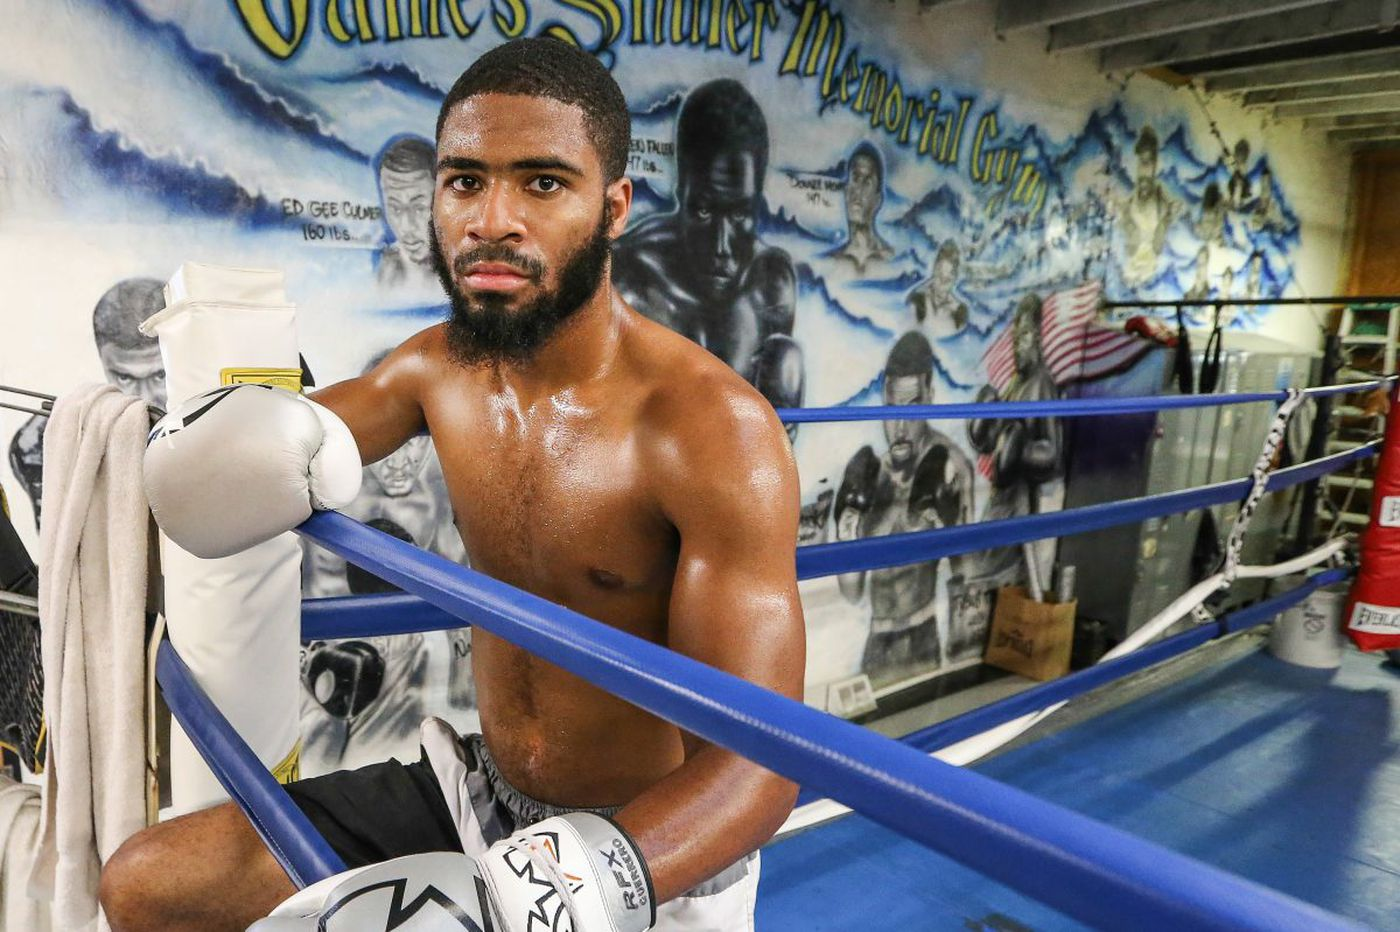 Philly boxer Stephen Fulton gets title shot after rising from 'The Bottom'